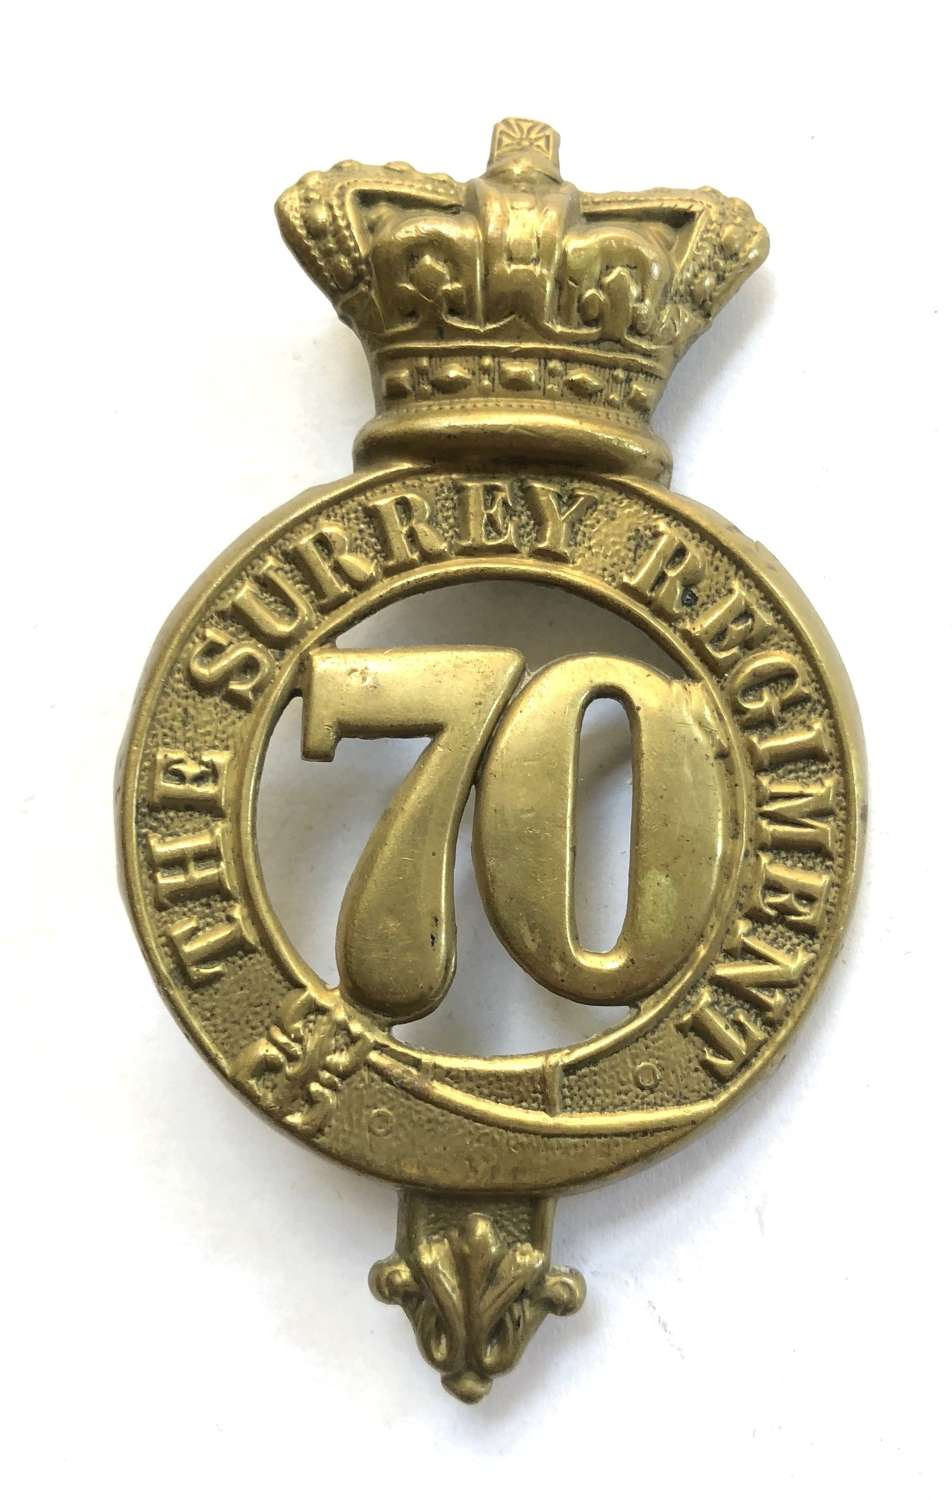 70th (The Surrey) Regiment of Foot OR's glengarry badge c1874-81